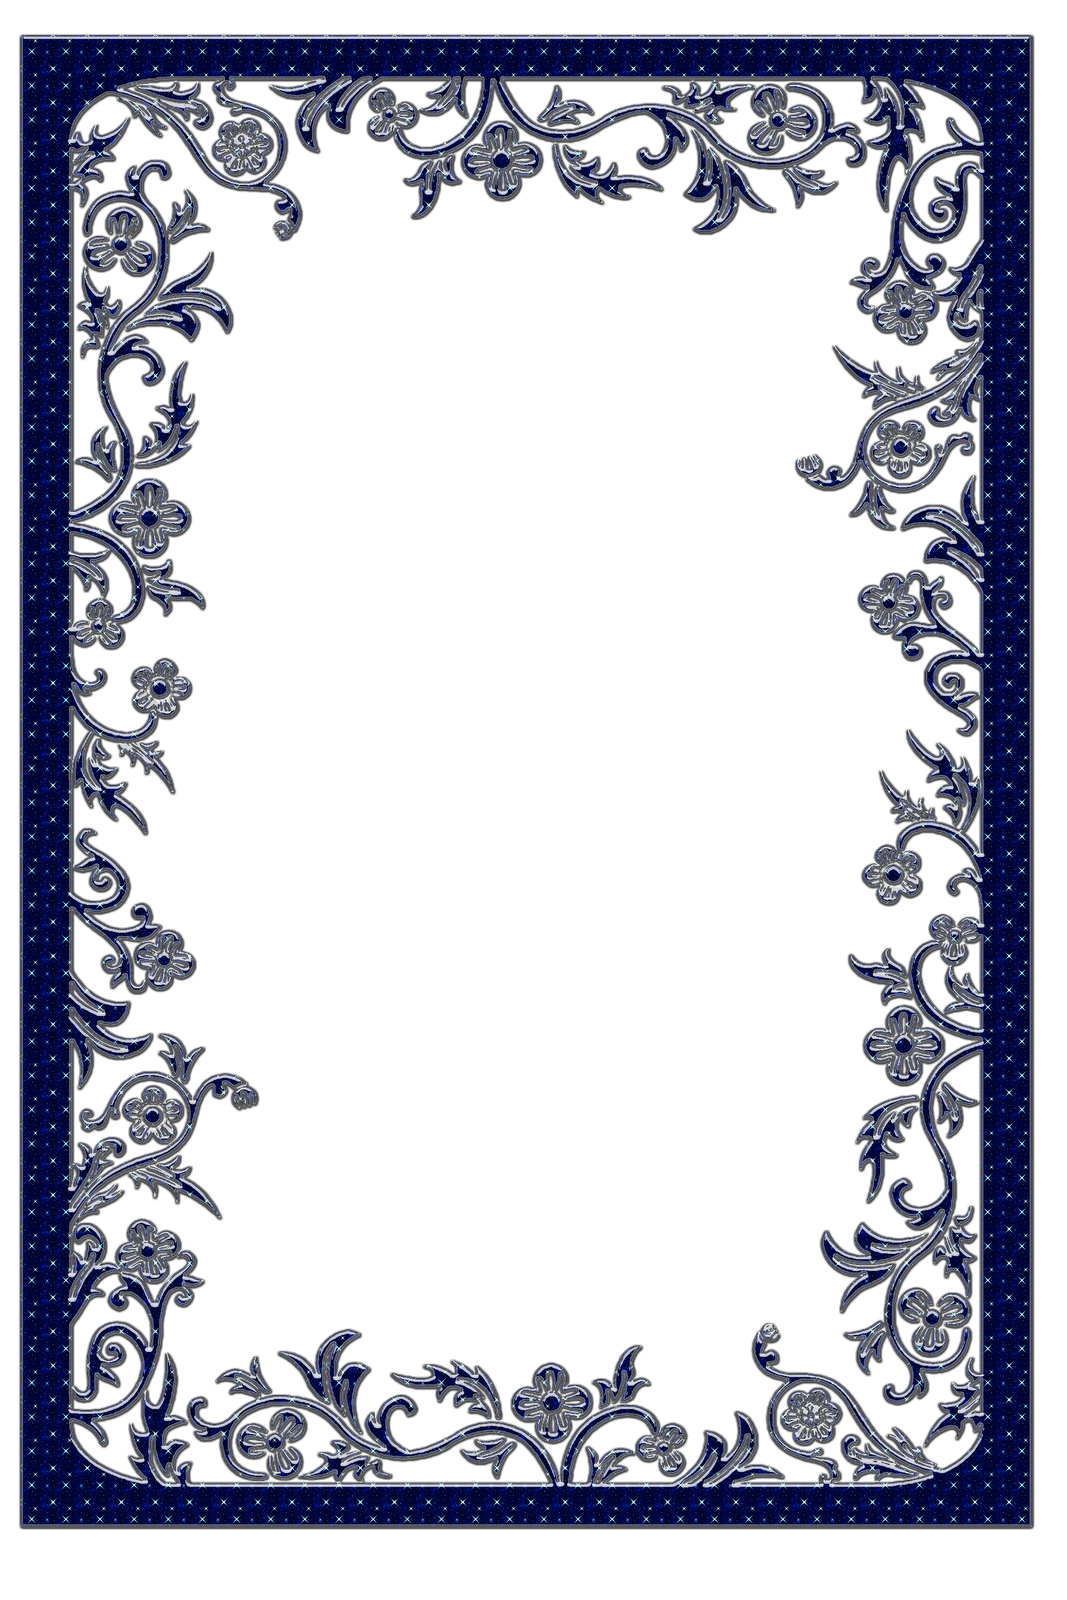 Large Dark Blue Transparent Frame.